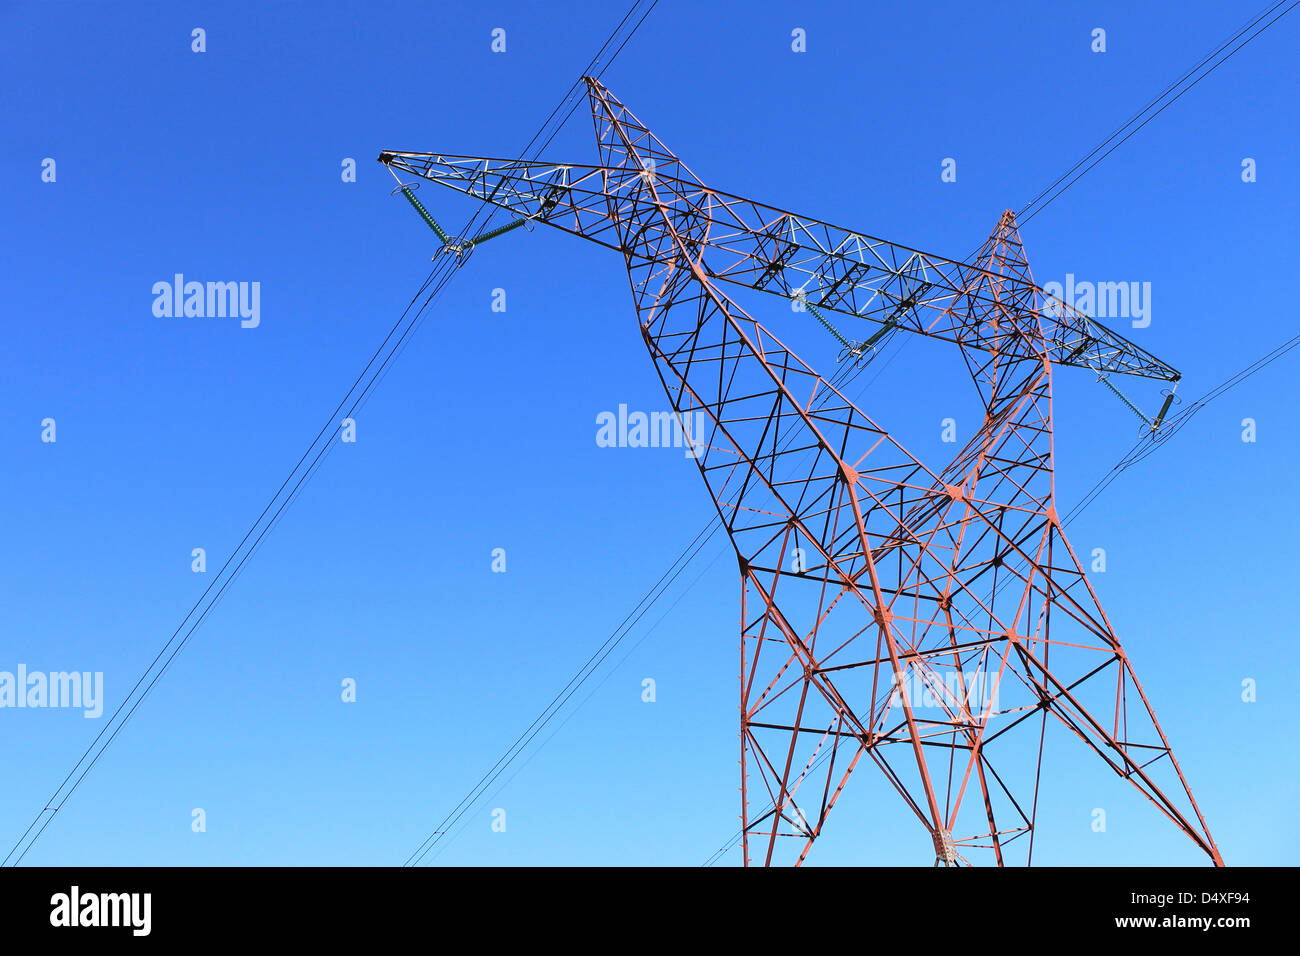 on an electricity pylon against blue sky for a renewable electricity or nuclear - Stock Image